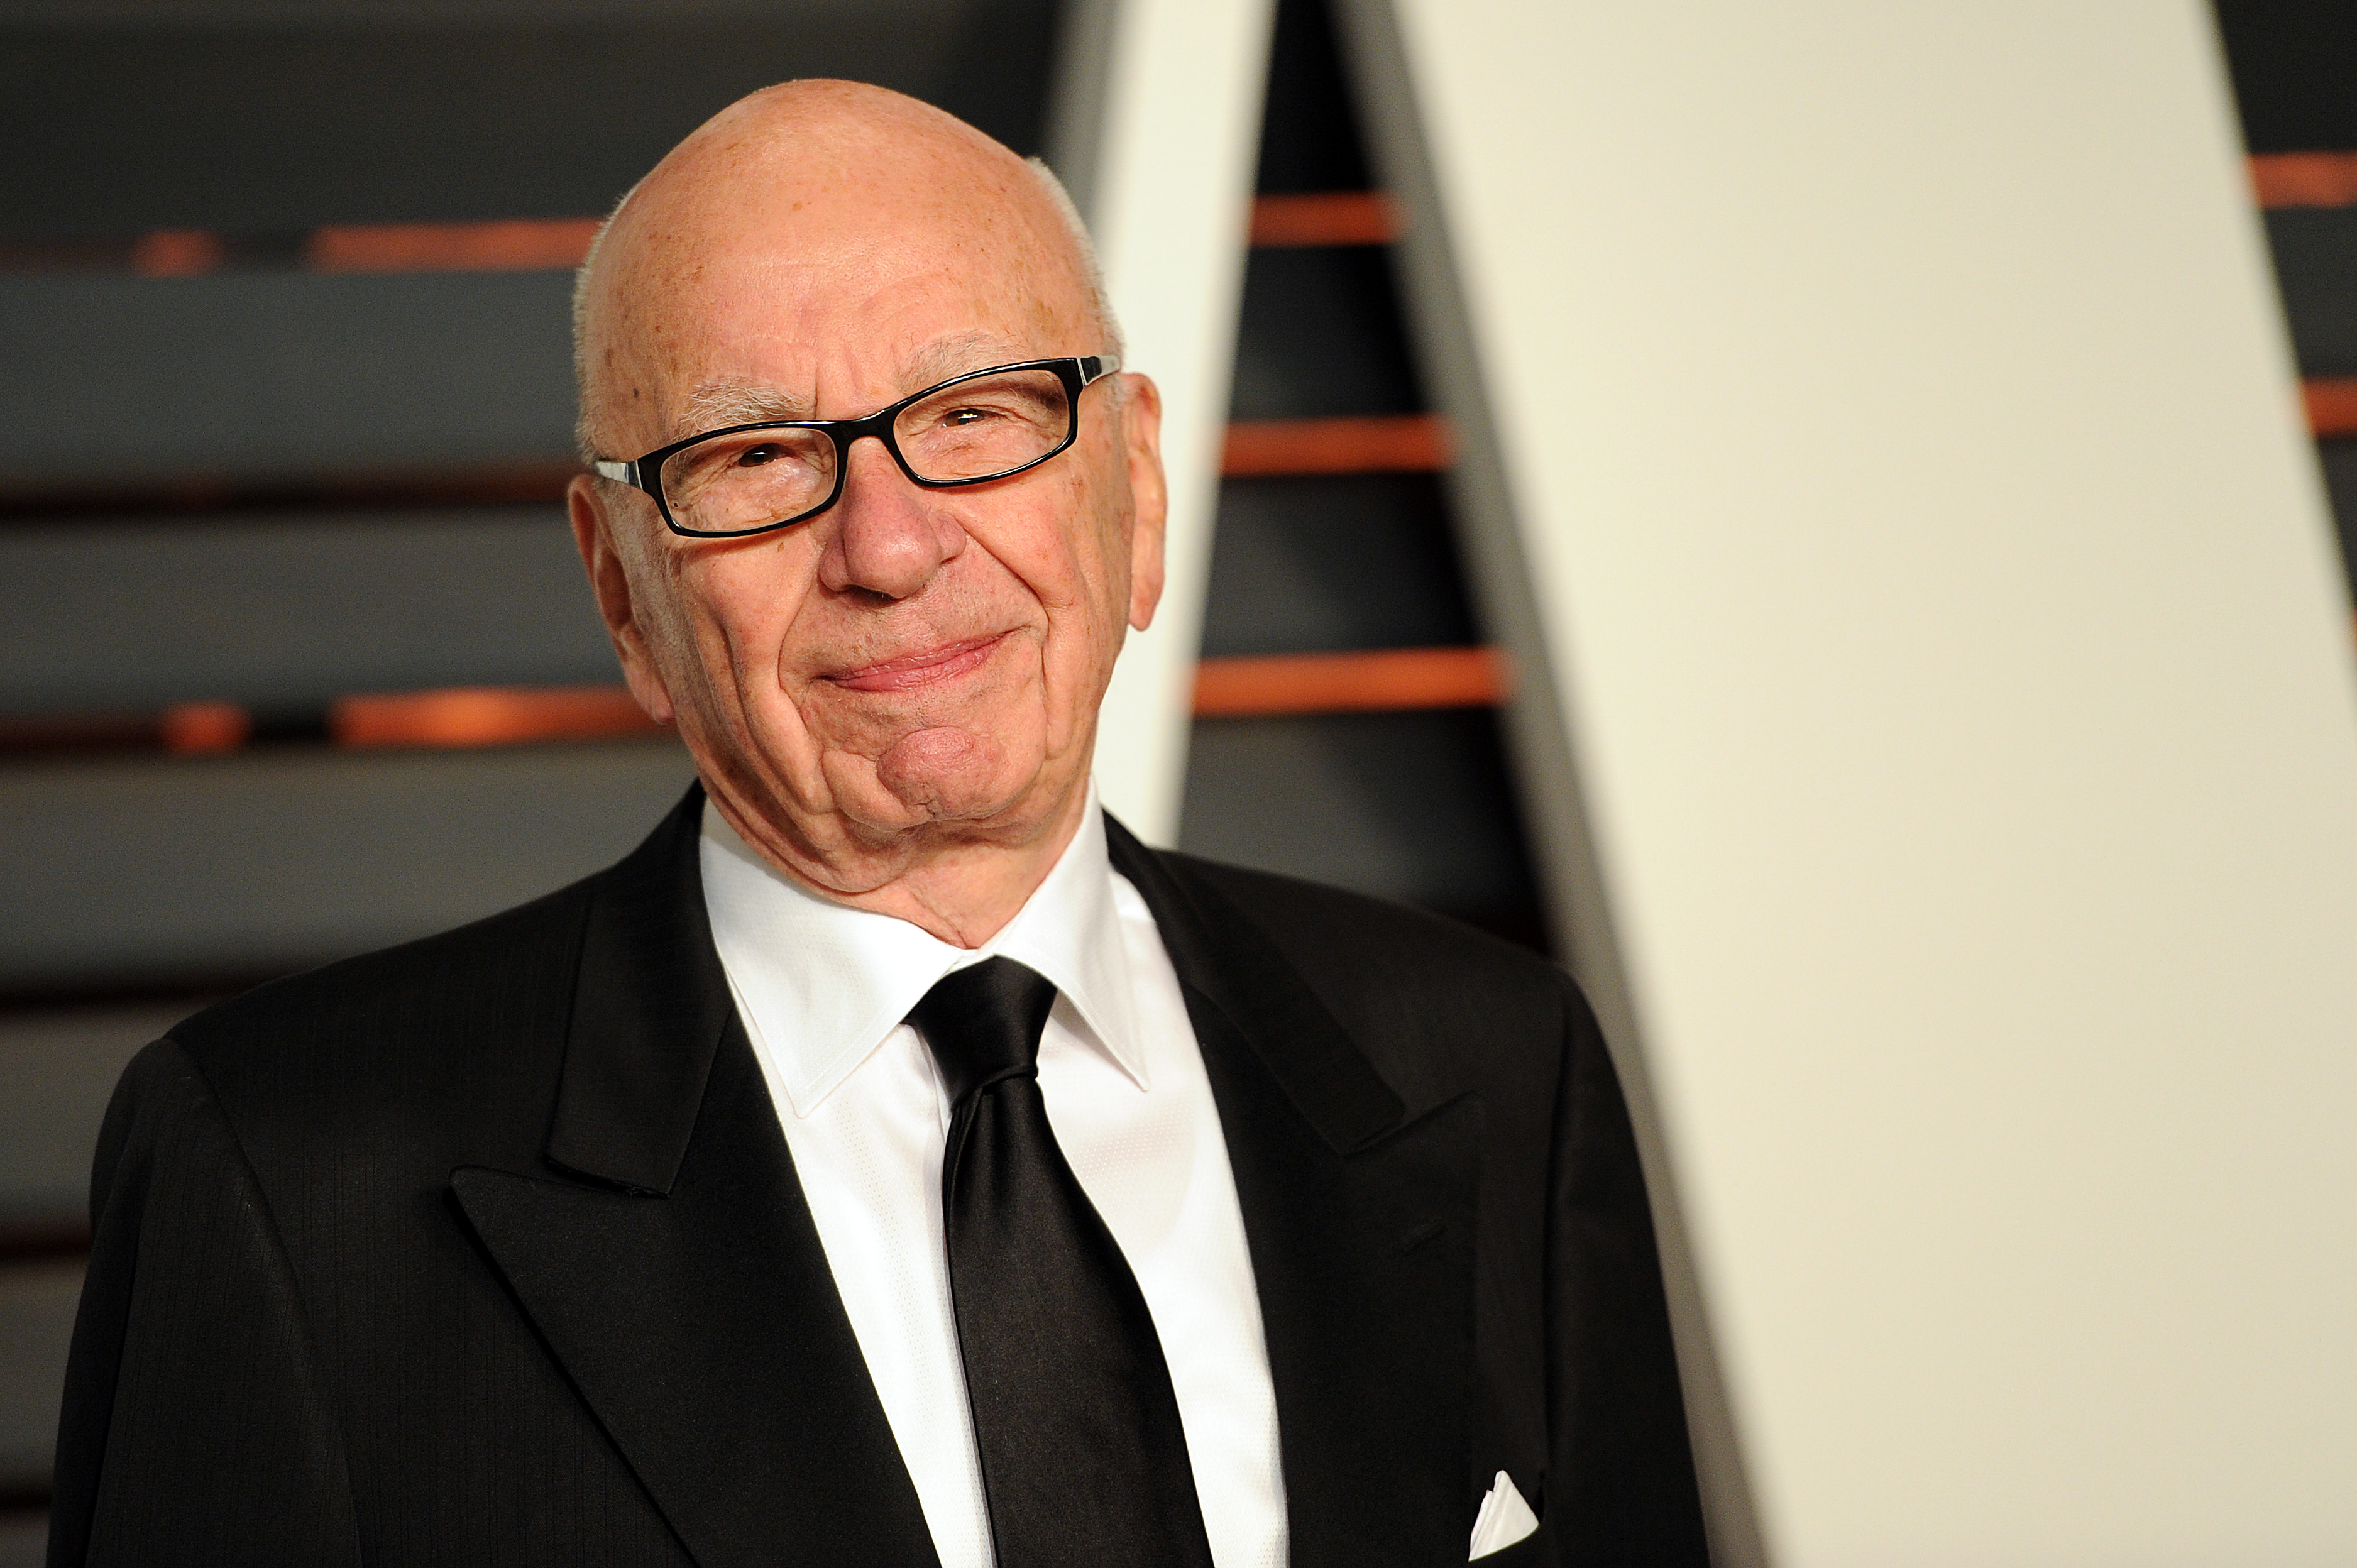 Rupert Murdoch arrives at the 2015 Vanity Fair Oscar Party on Feb. 22, 2015, in Beverly Hills, Calif.